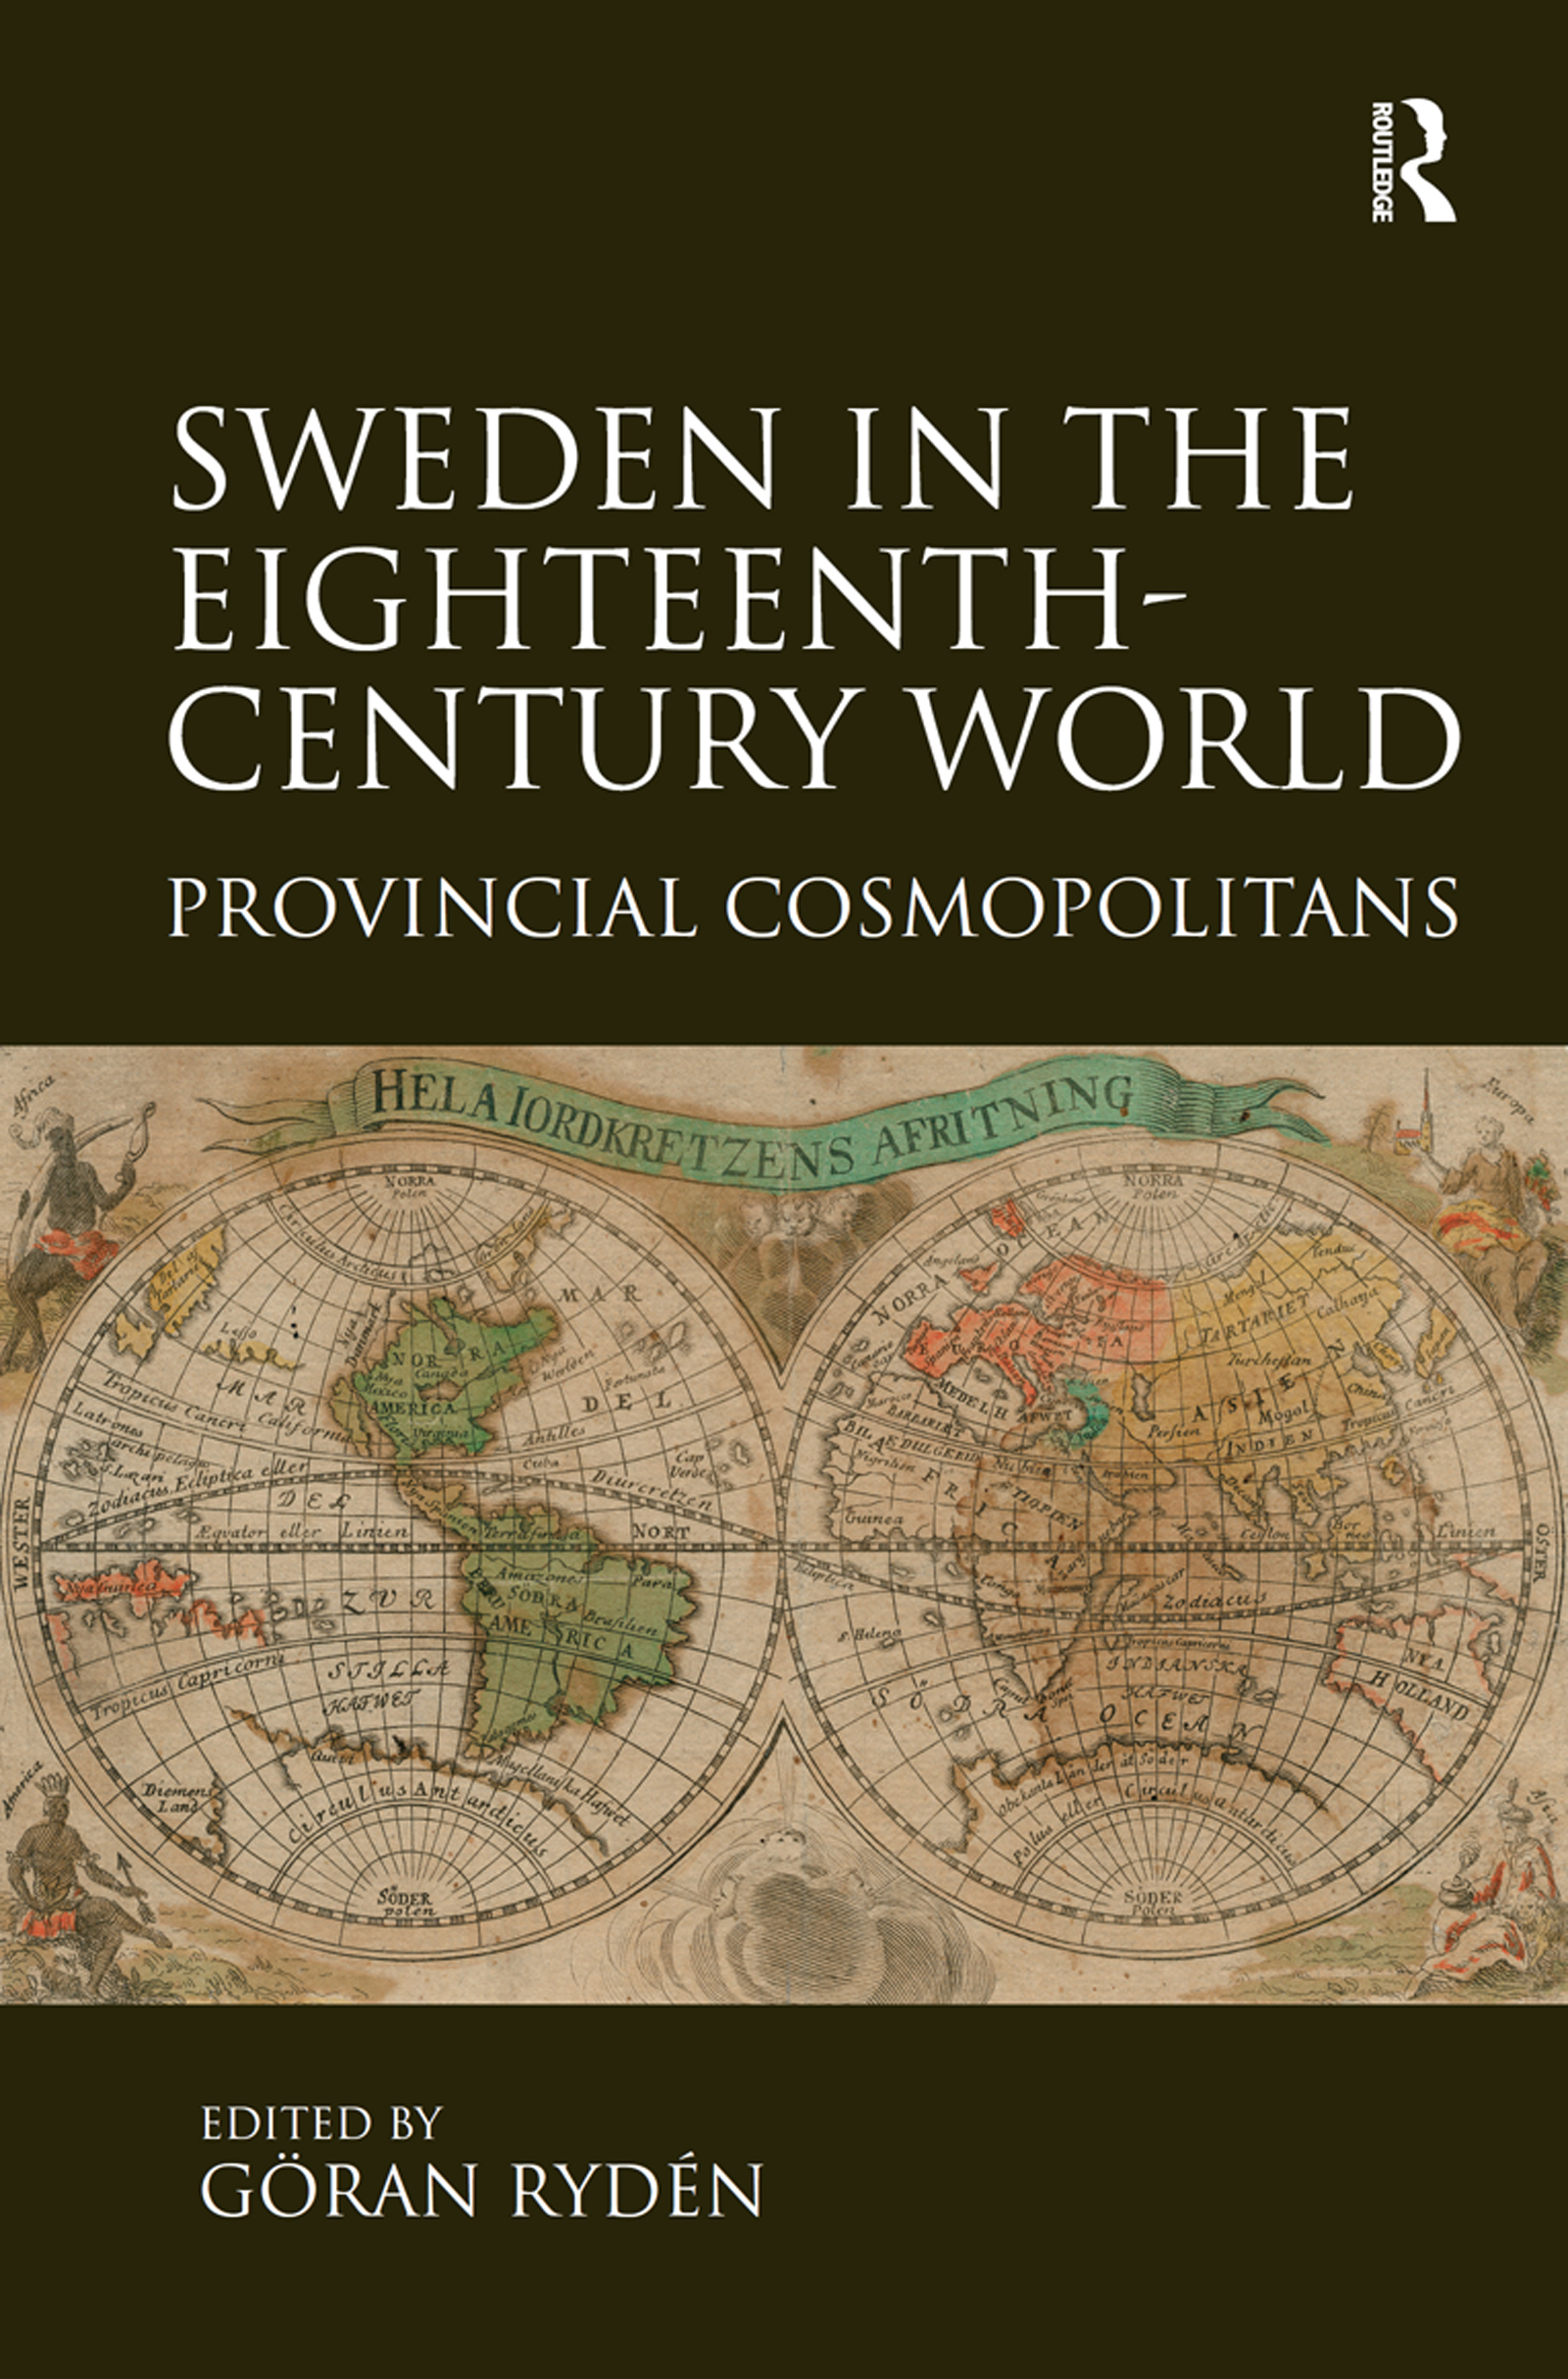 Sweden in the Eighteenth-Century World: Provincial Cosmopolitans, 1st Edition (Hardback) book cover